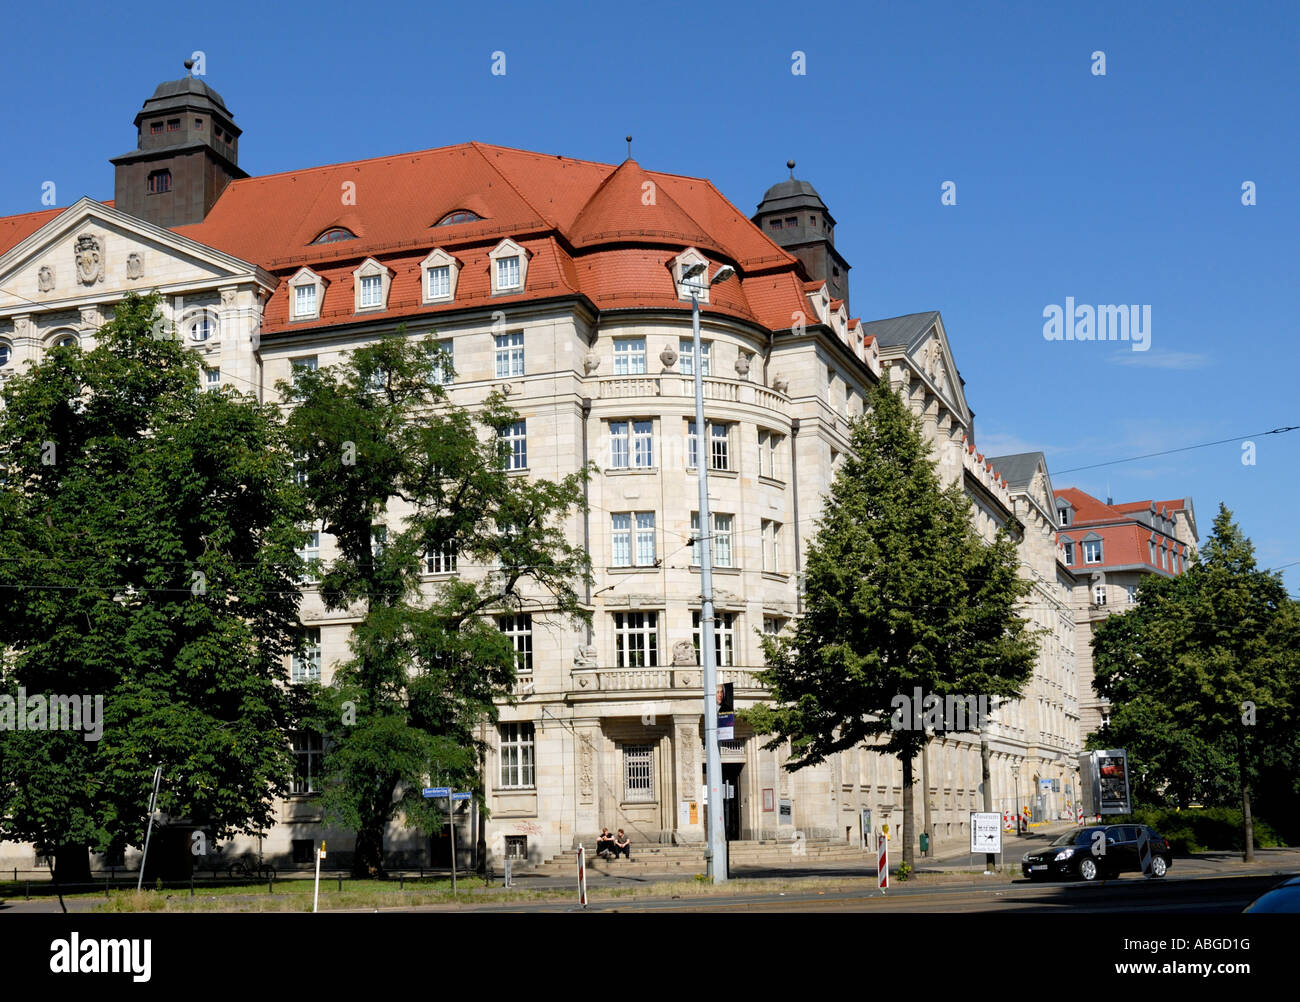 Former building of the Ministry for State Security, Leipzig, Saxony, Germany - Stock Image